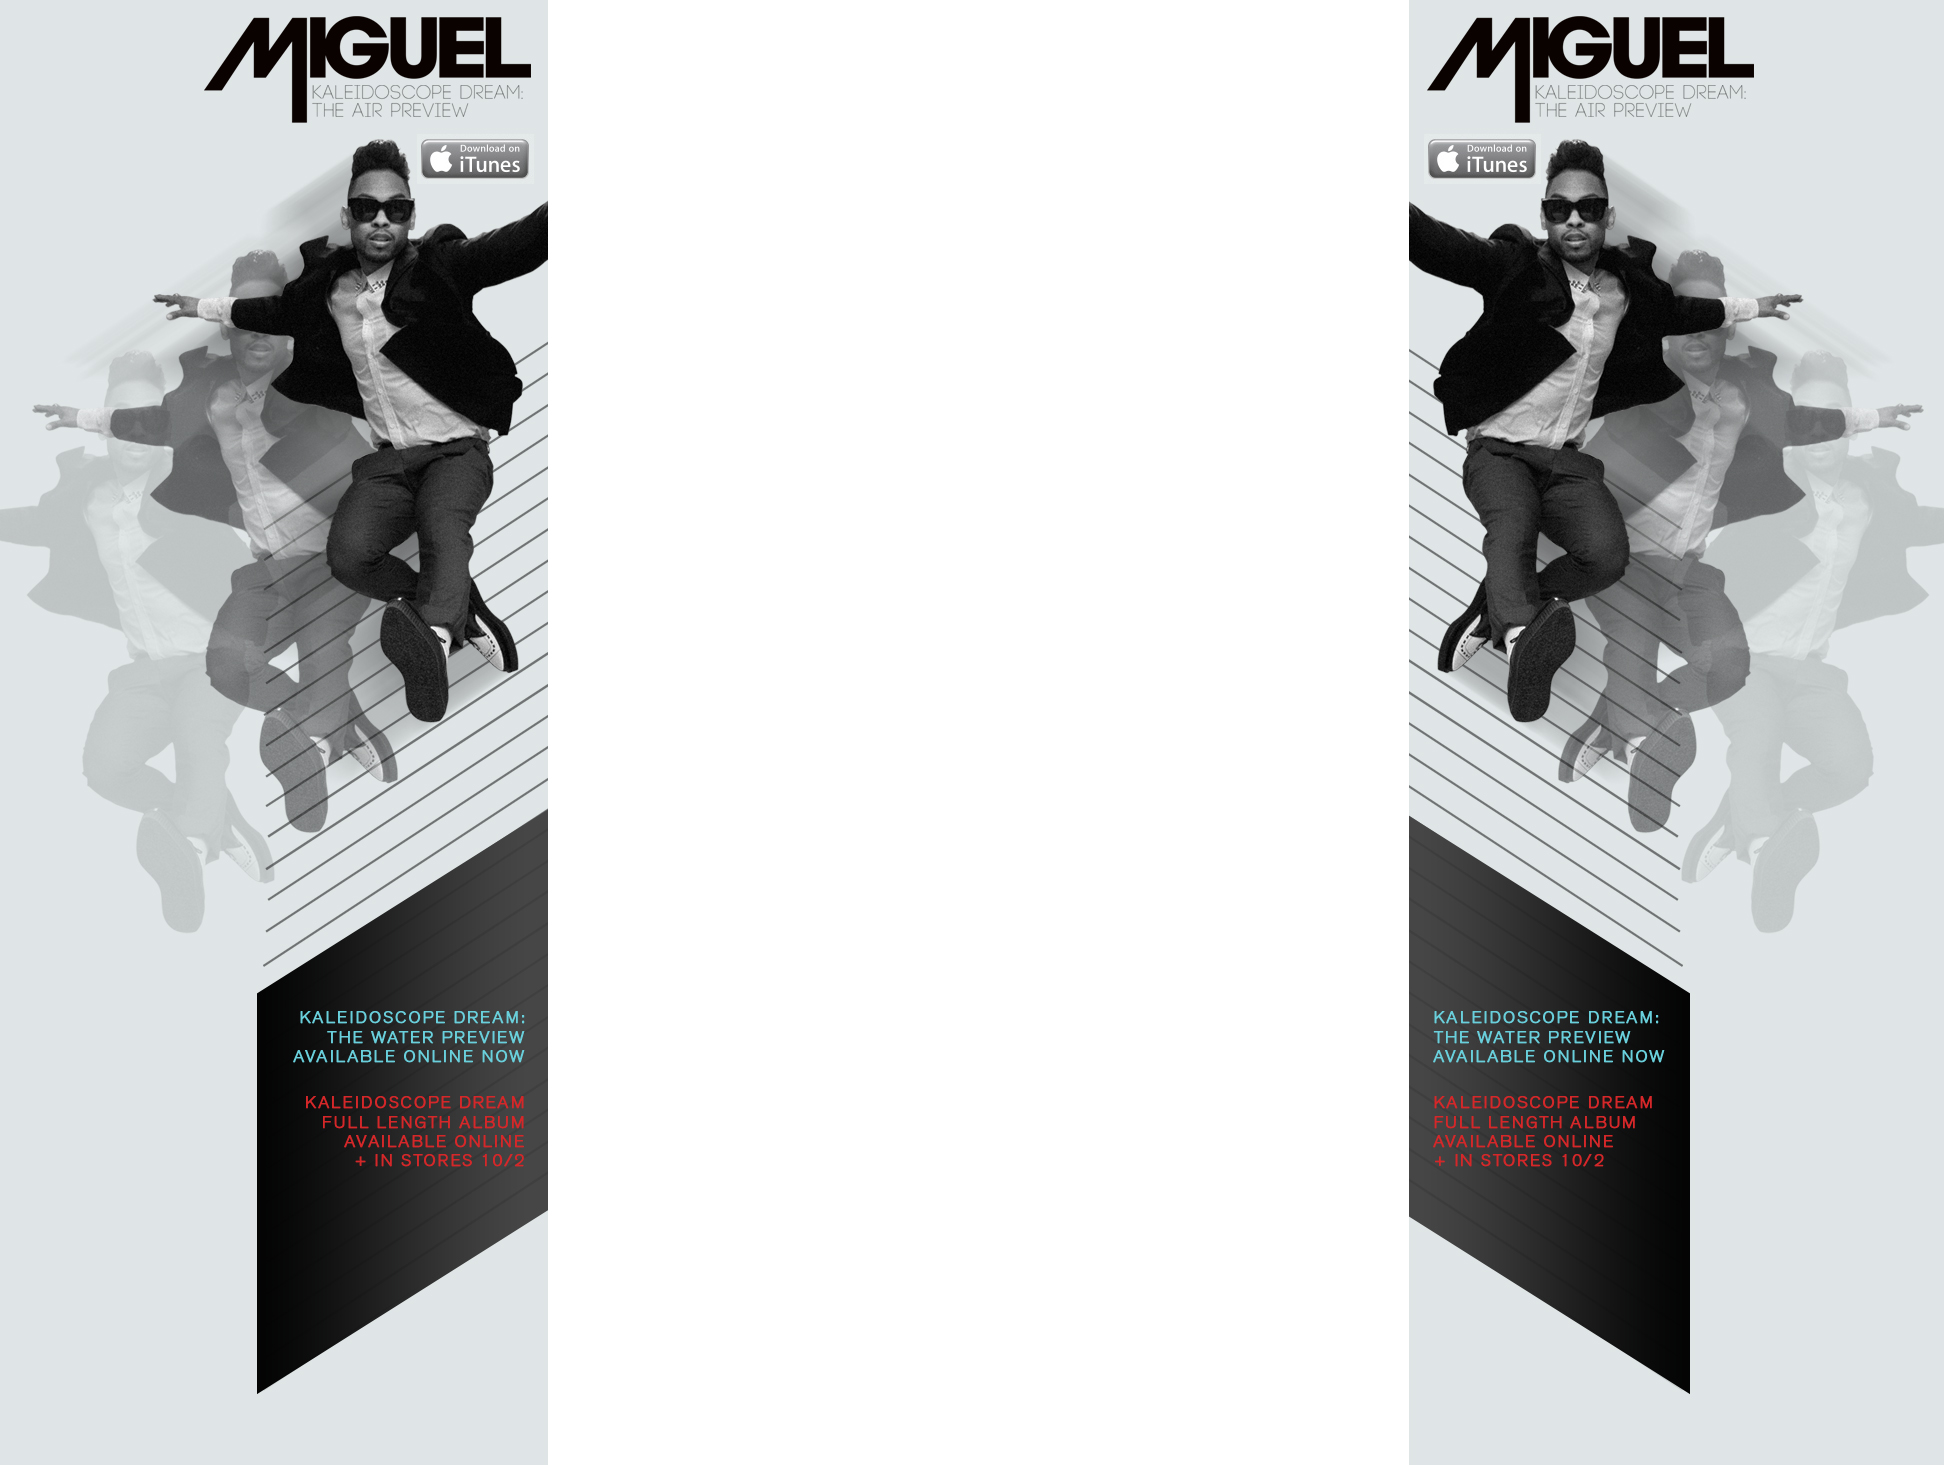 miguel_takeover_ready5.jpg